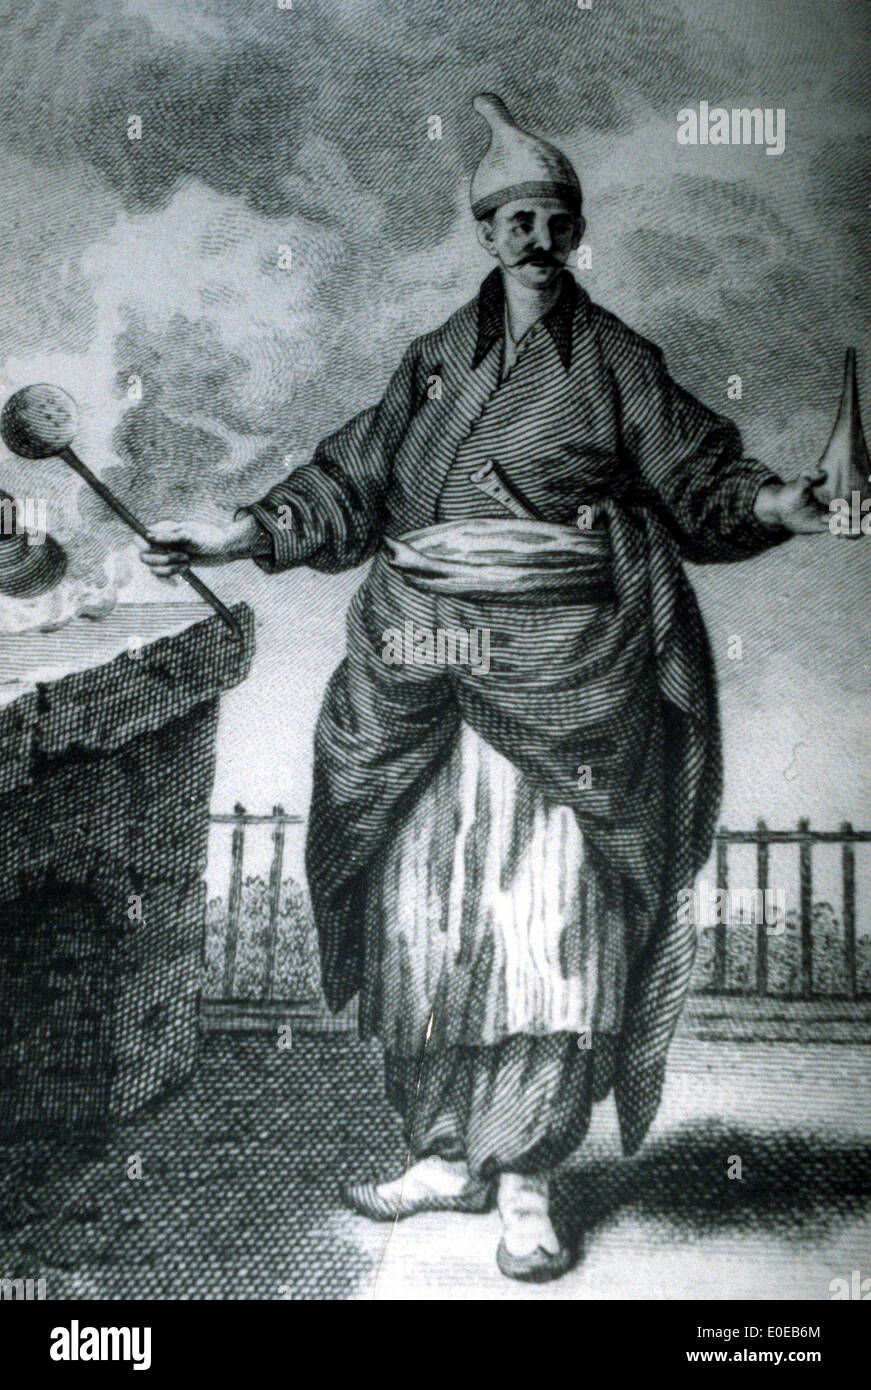 Lithograph of an Ottoman chef in the kitchen of the Topkapi Palace - Stock Image